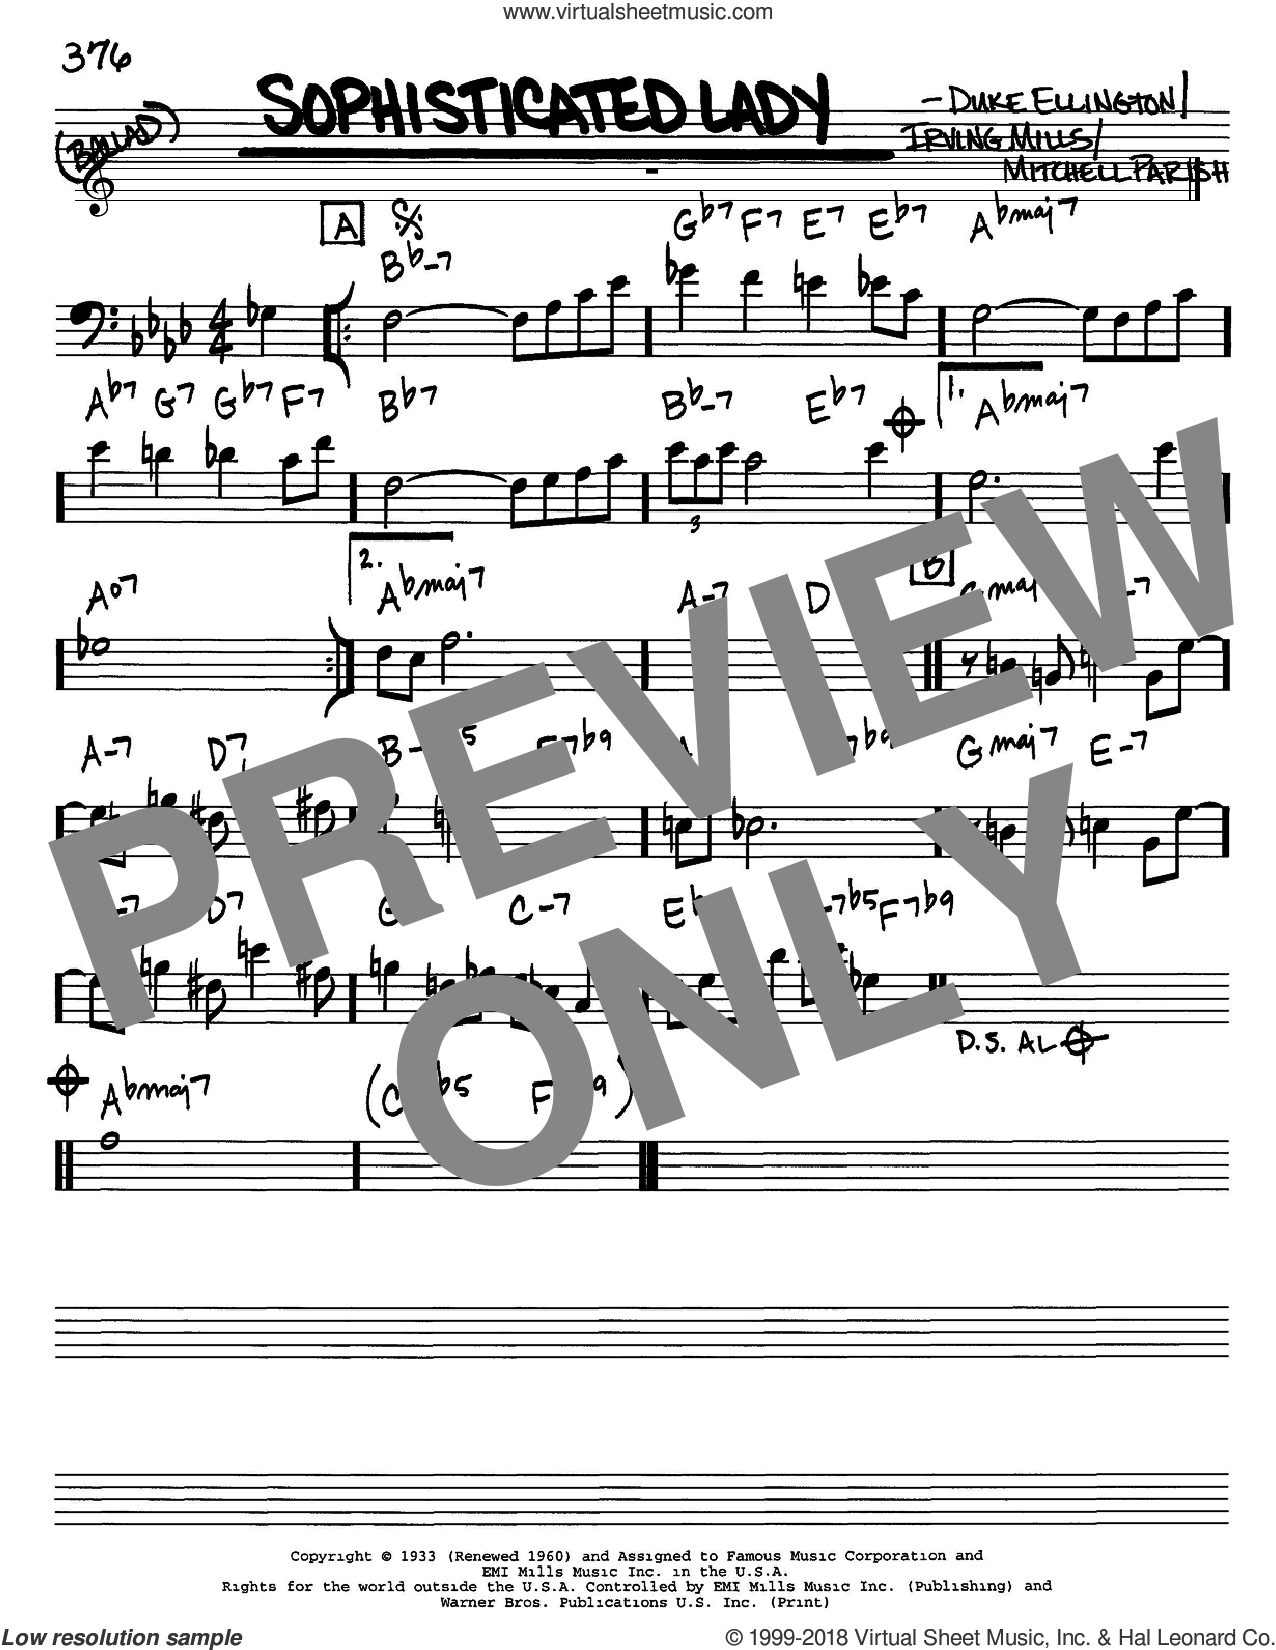 Sophisticated Lady sheet music for voice and other instruments (Bass Clef ) by Mitchell Parish